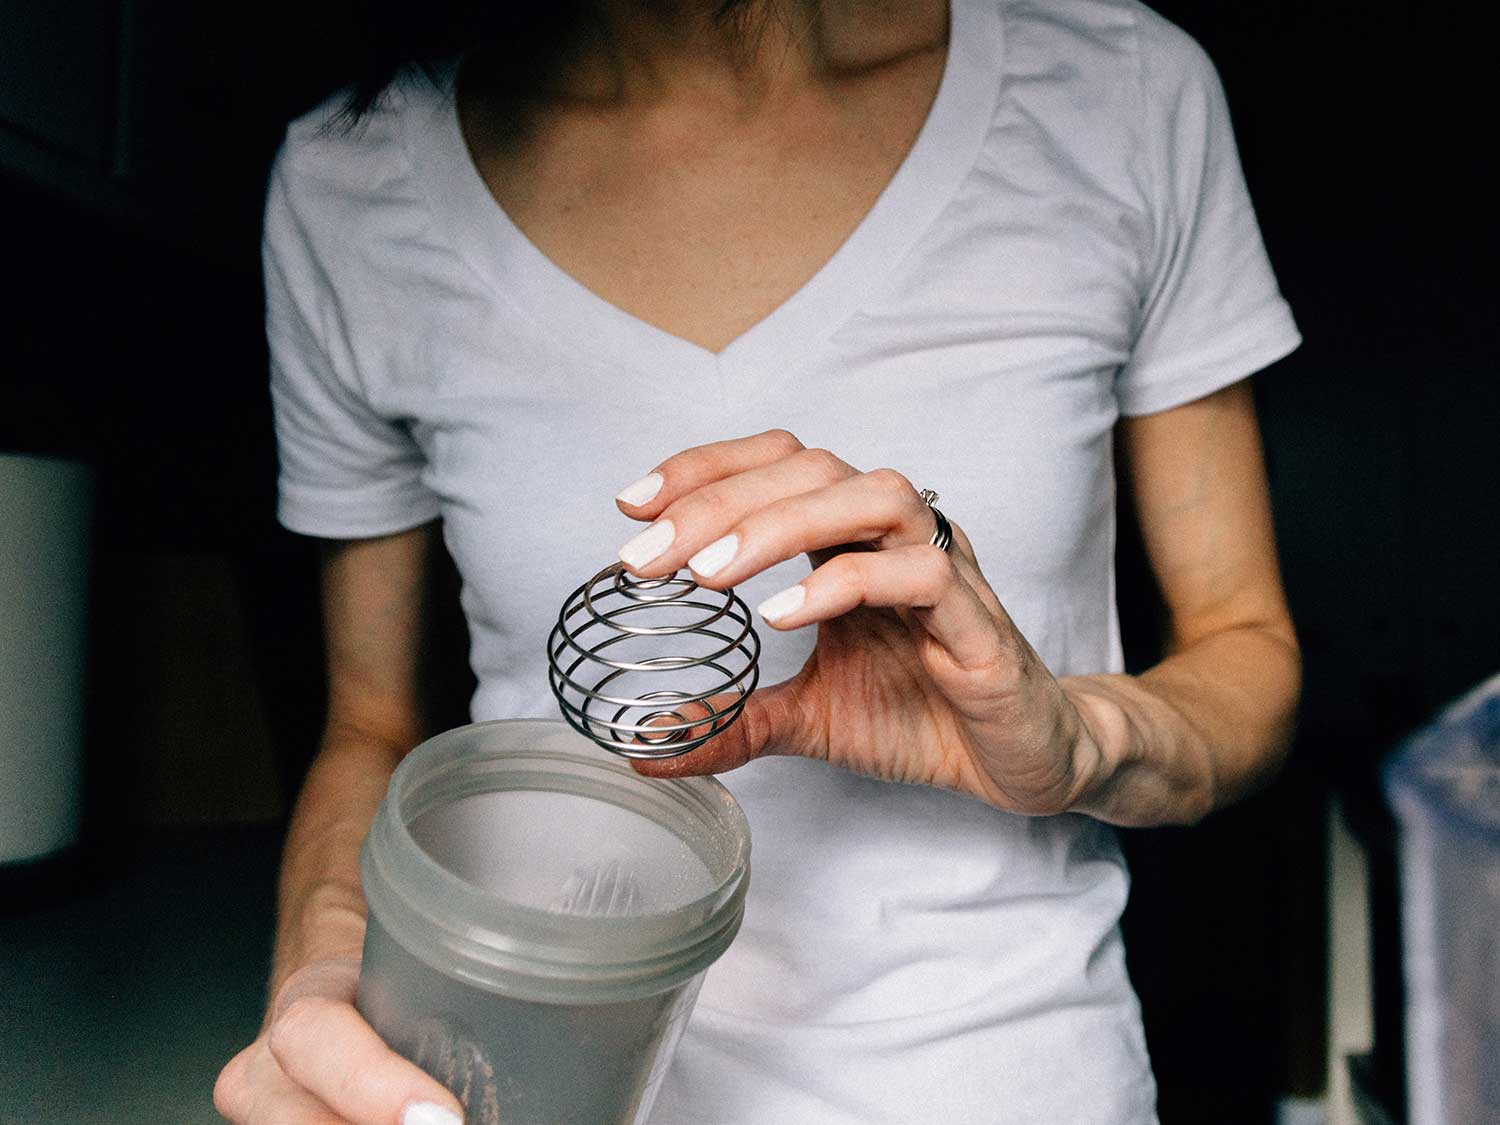 Woman using shaker bottle for protein mix or smoothie.